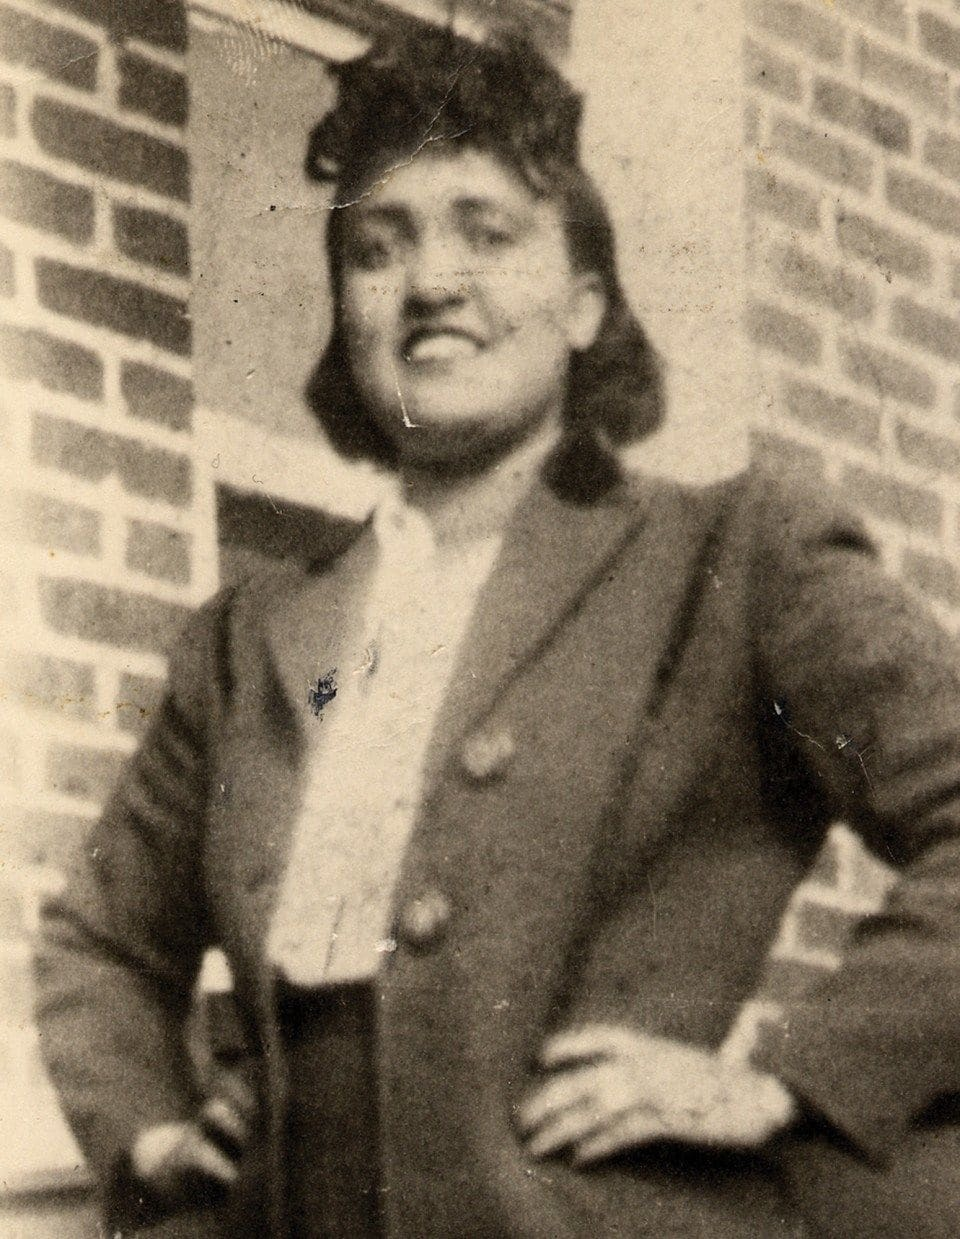 BHM Henrietta Lacks